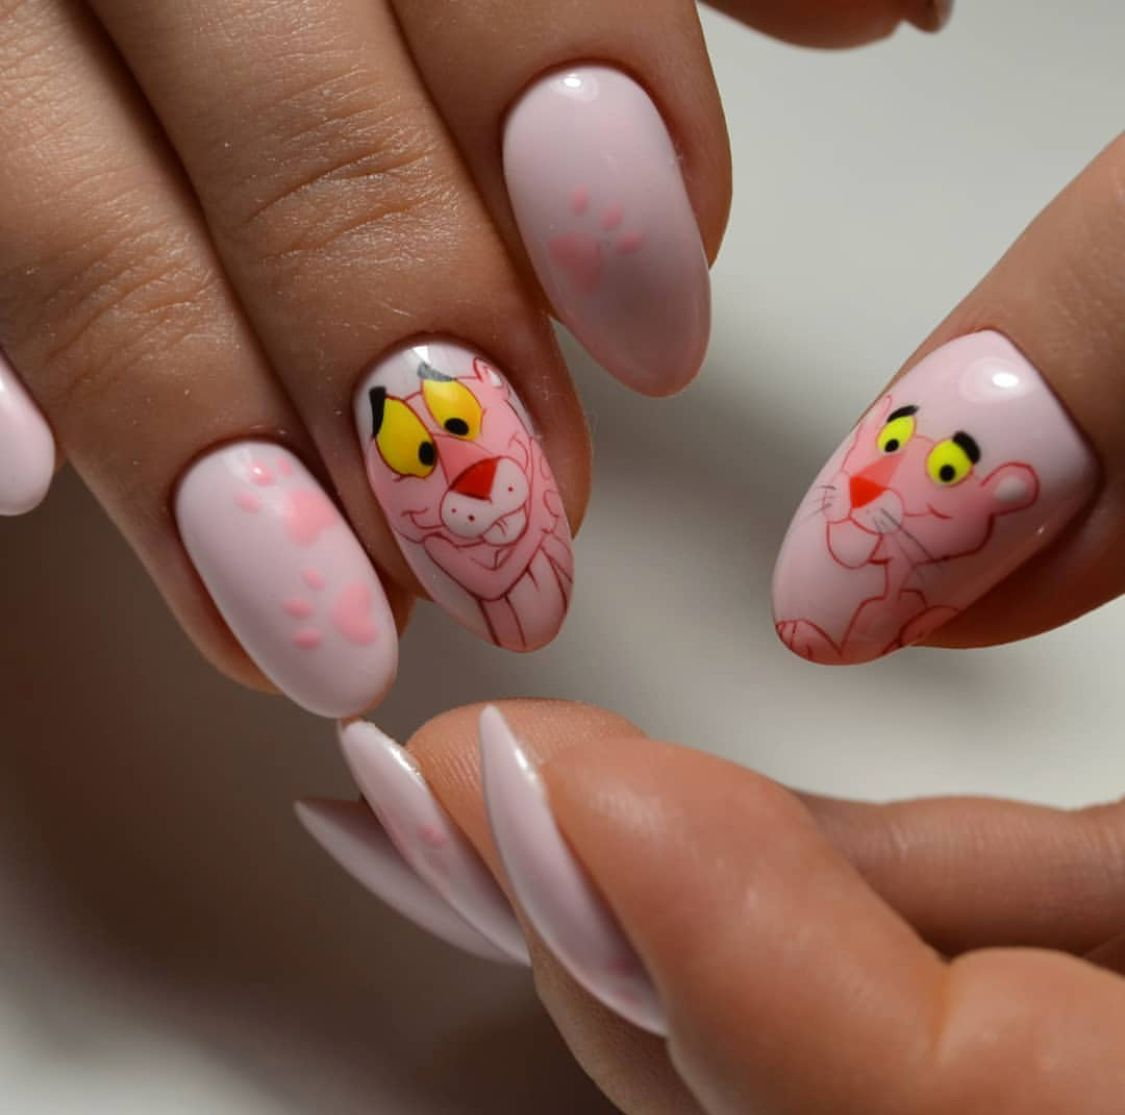 Pin by iva on manicure ideas in pinterest nails nails